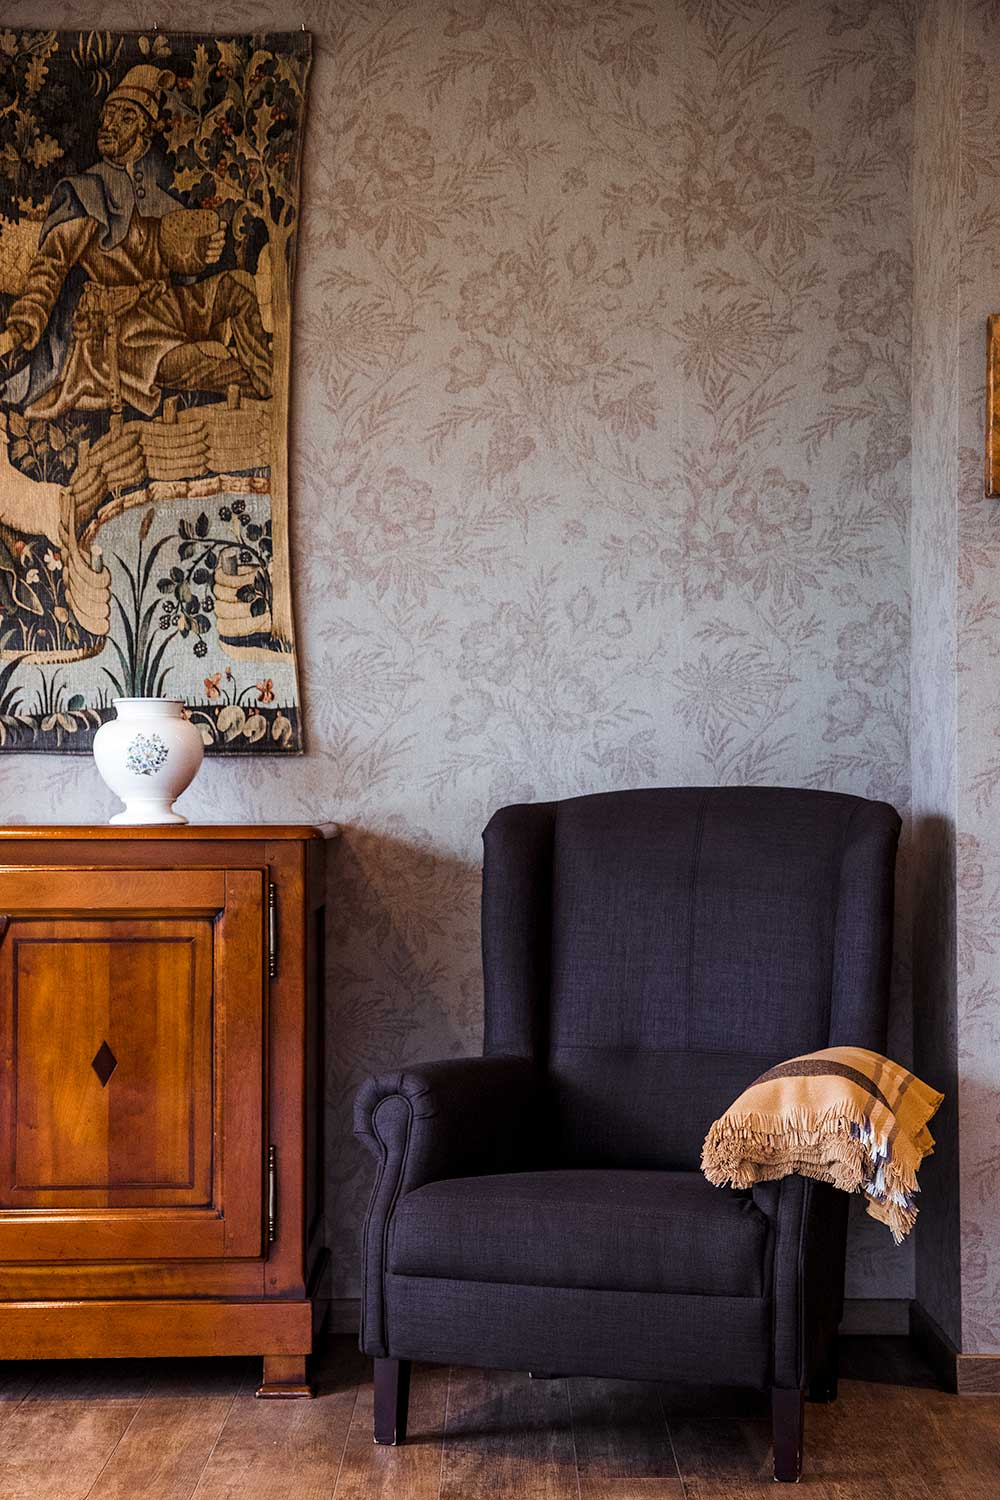 Cozy scenes at B&B Gaussignac to spend a unique Autumn weekend break in the Ardennes